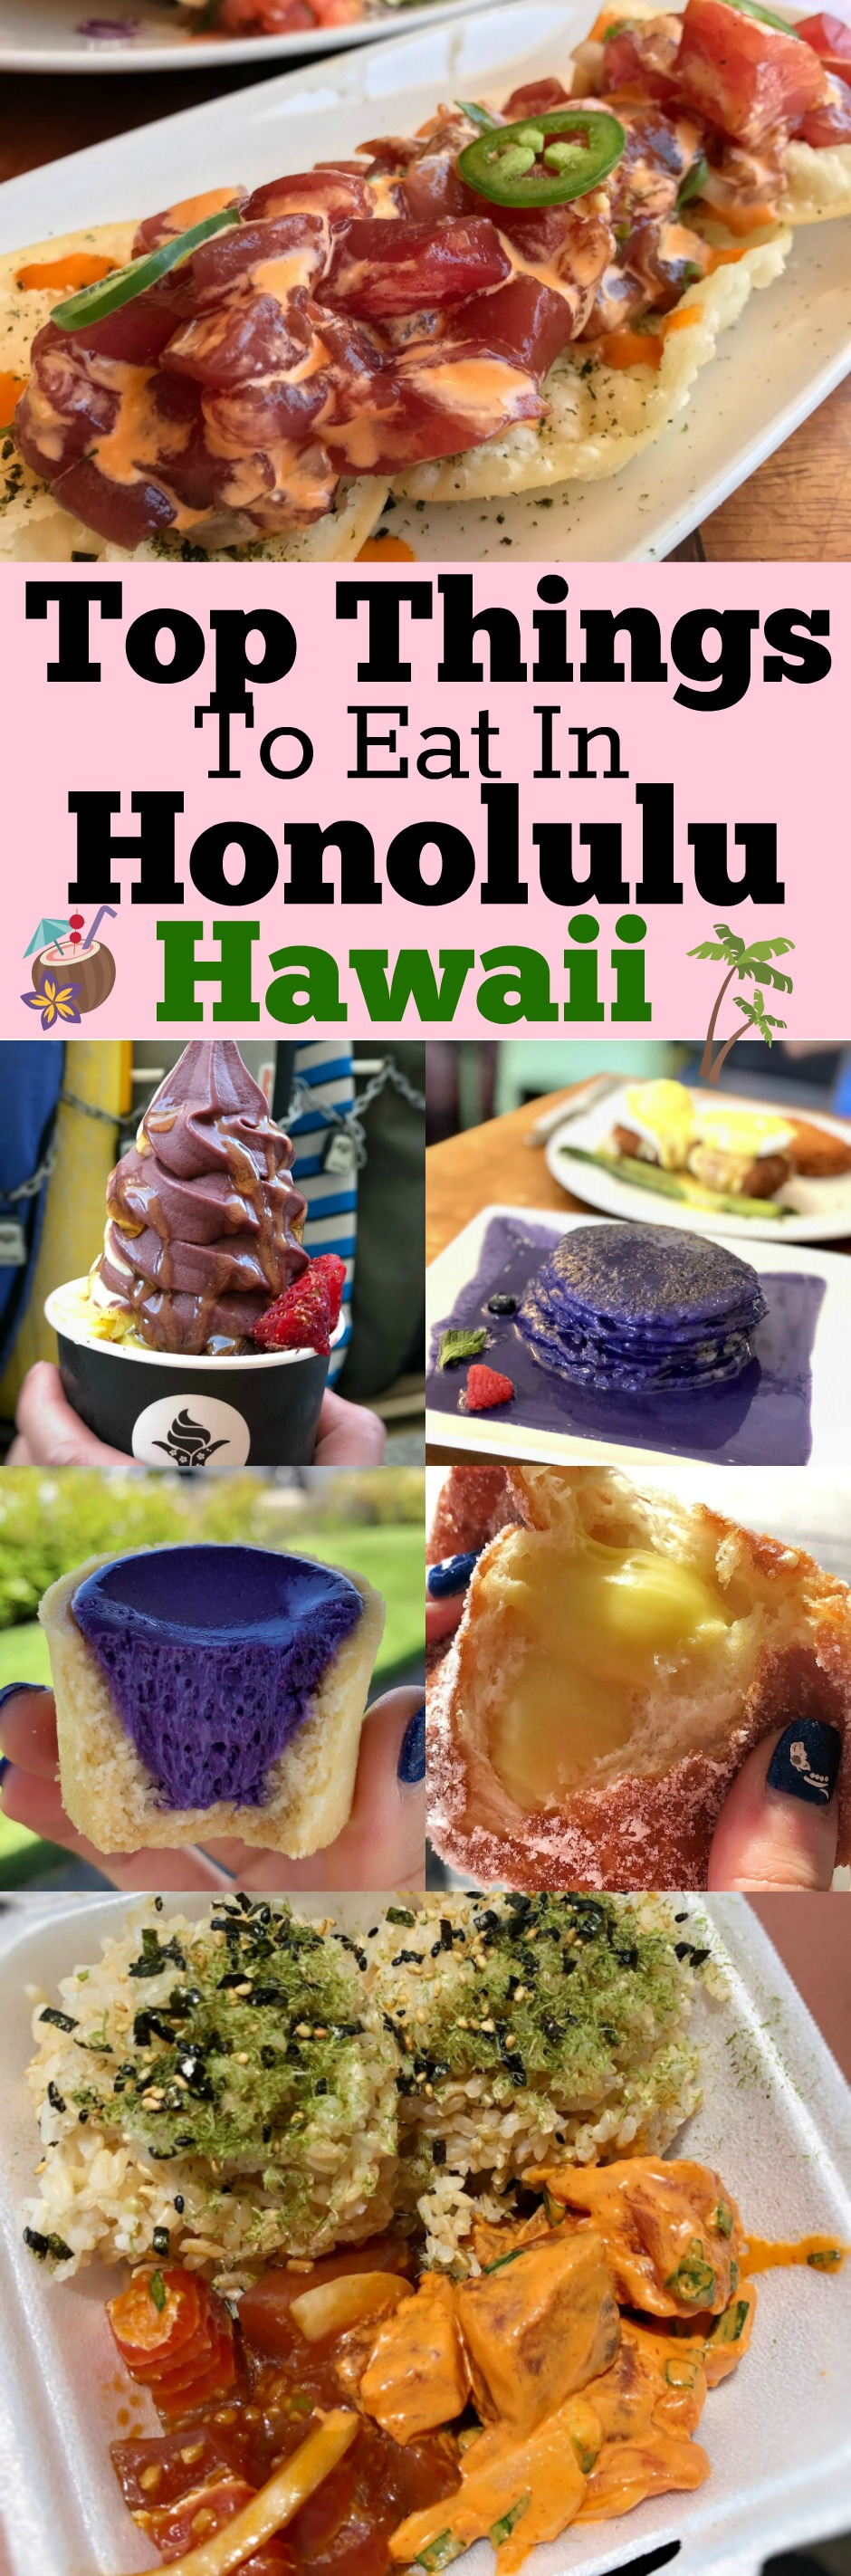 Top Things to eat in Honolulu Hawaii